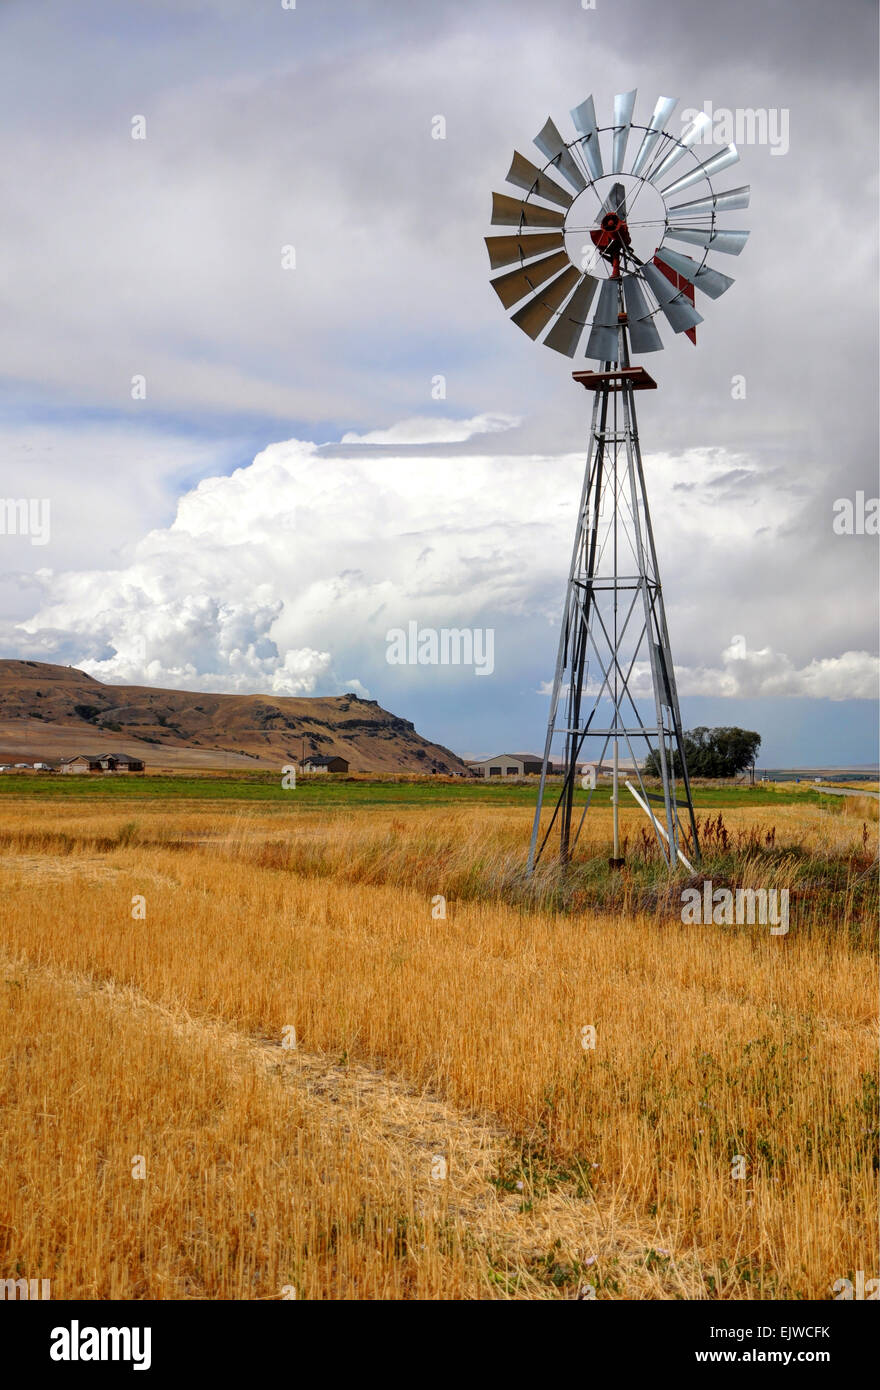 Farmer's Windmill during Thunderstorm - Cache Valley - Utah - Stock Image